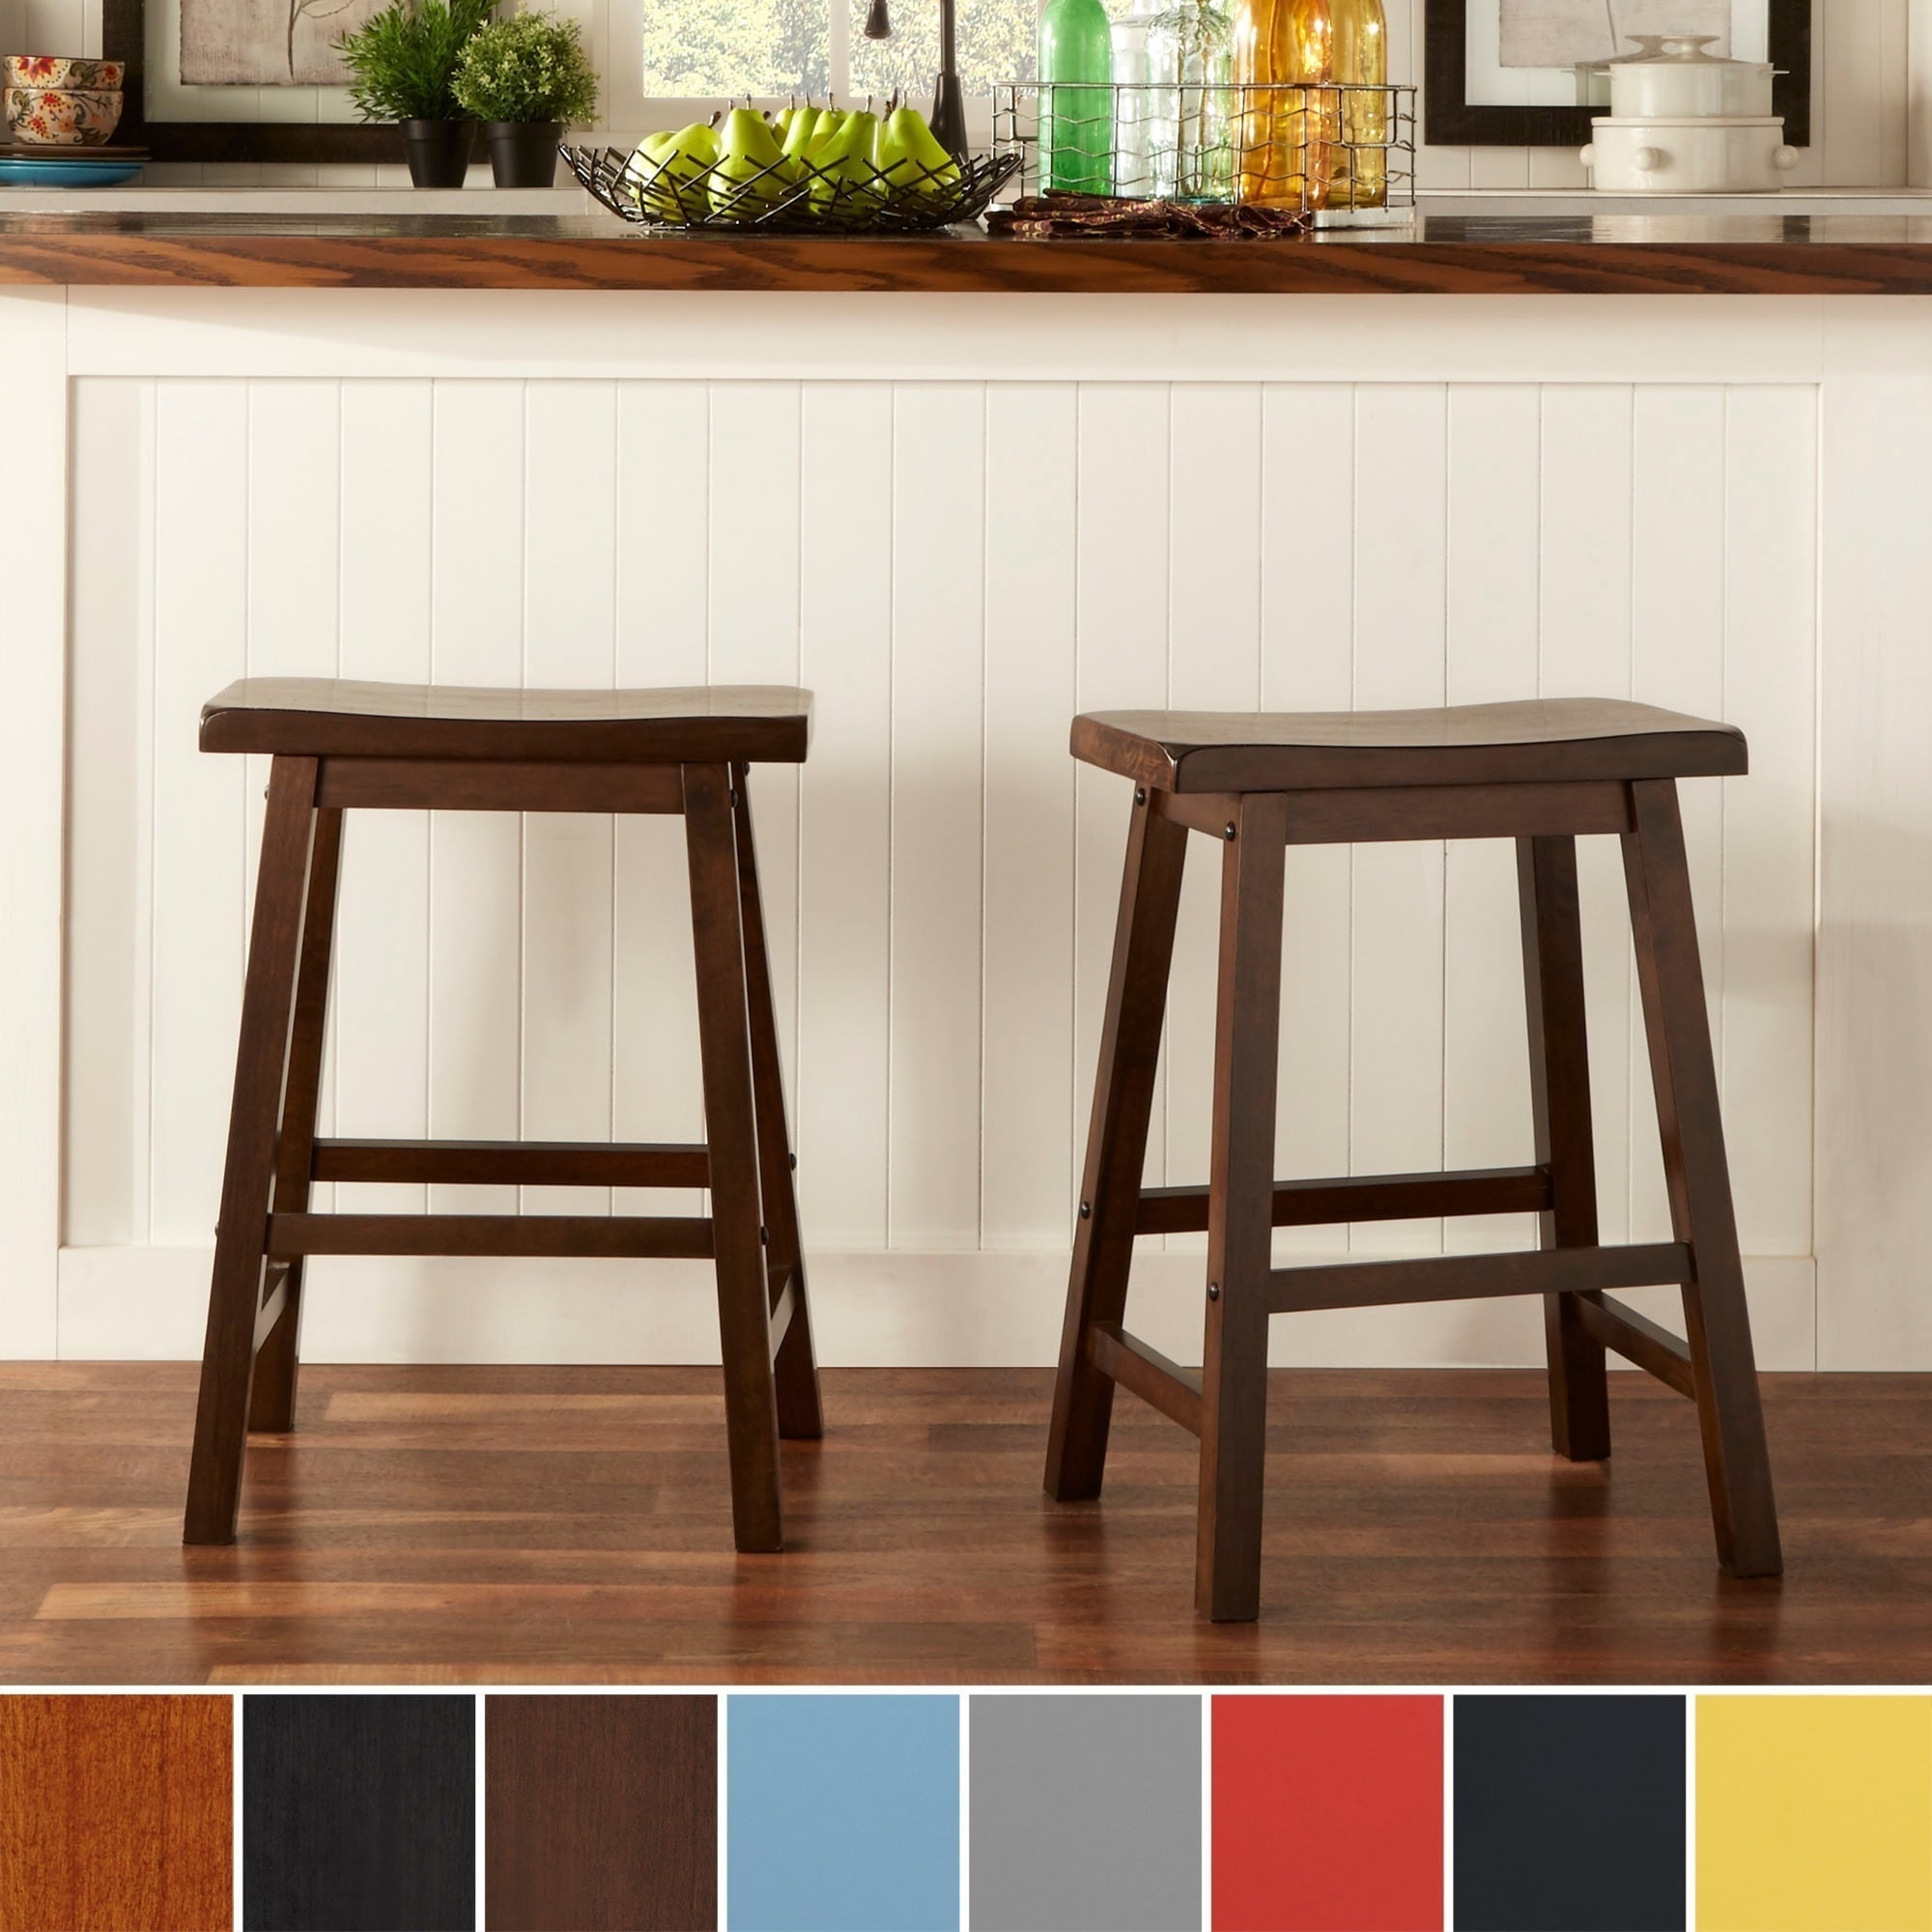 Saddle Back 24-inch Counter Height Backless Stool (Set of 2)